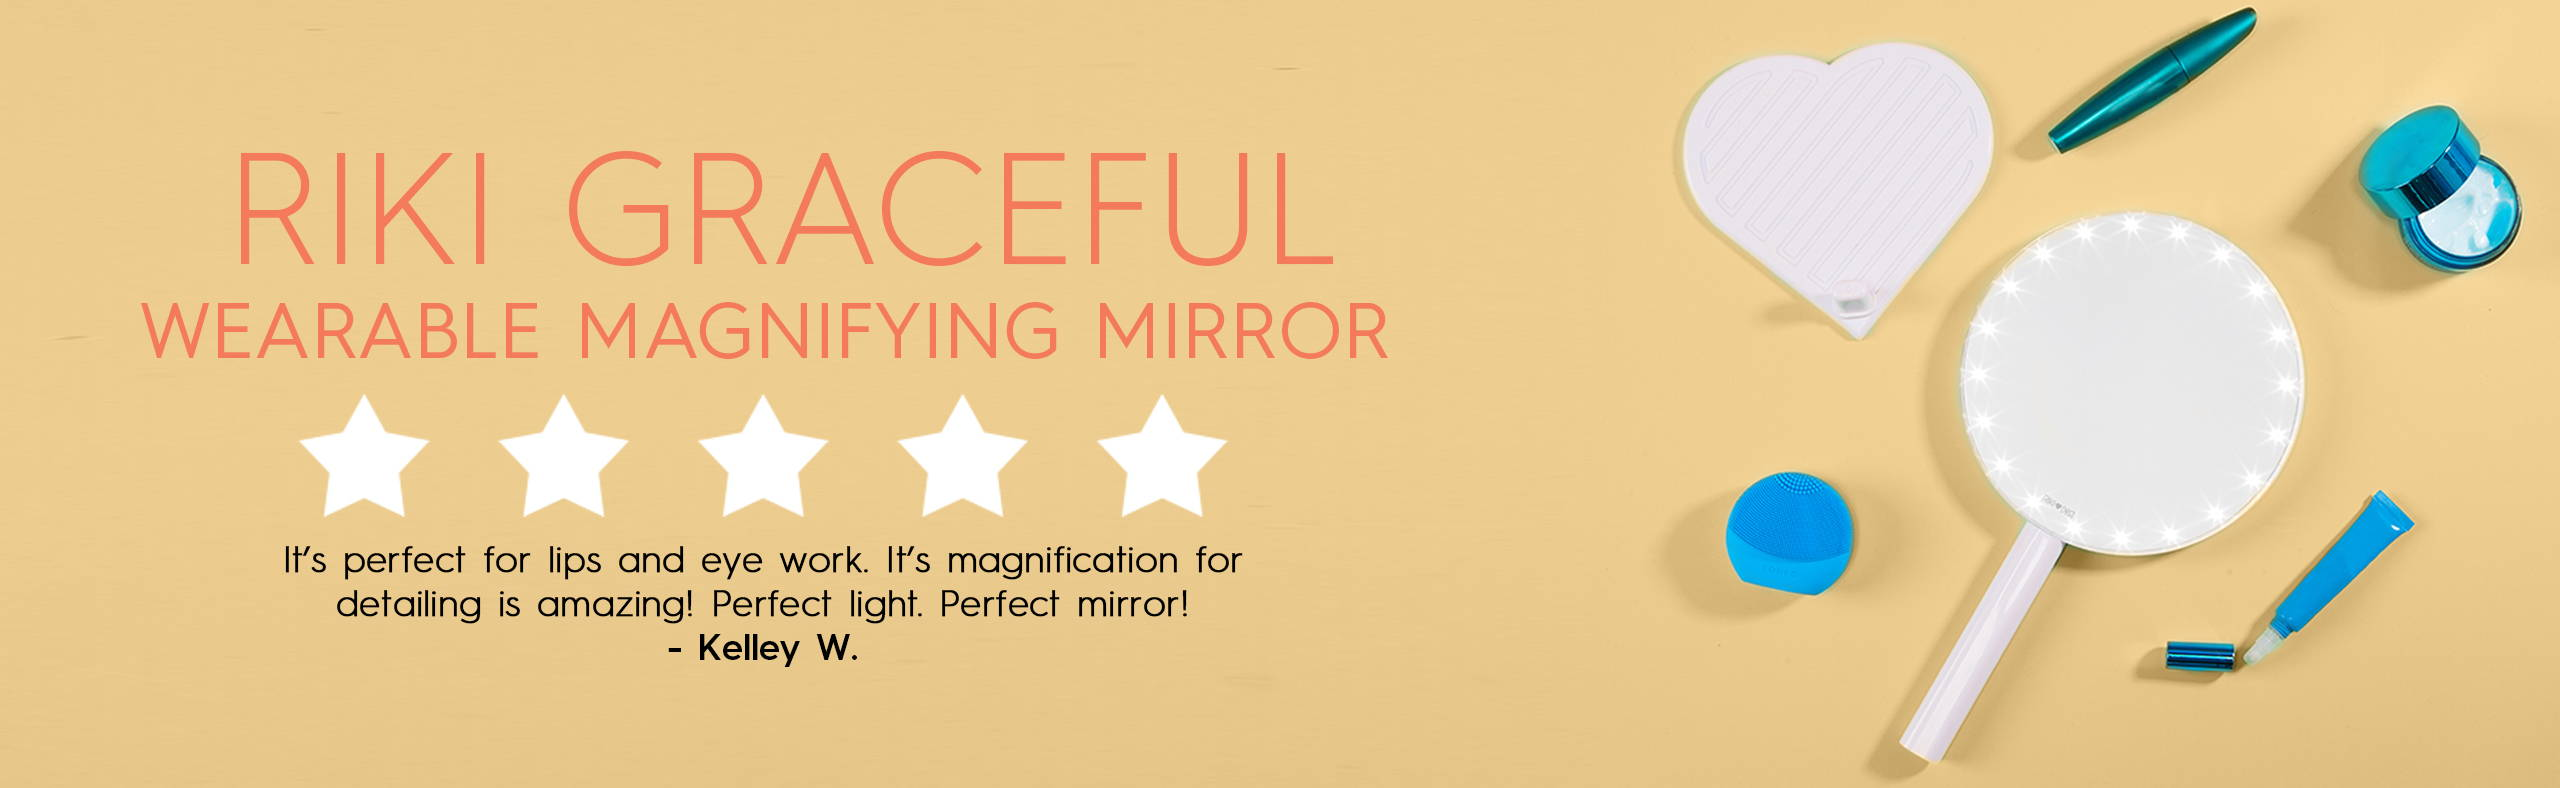 RIKI GRACEFUL is the best wearable magnifying makeup vanity with lights